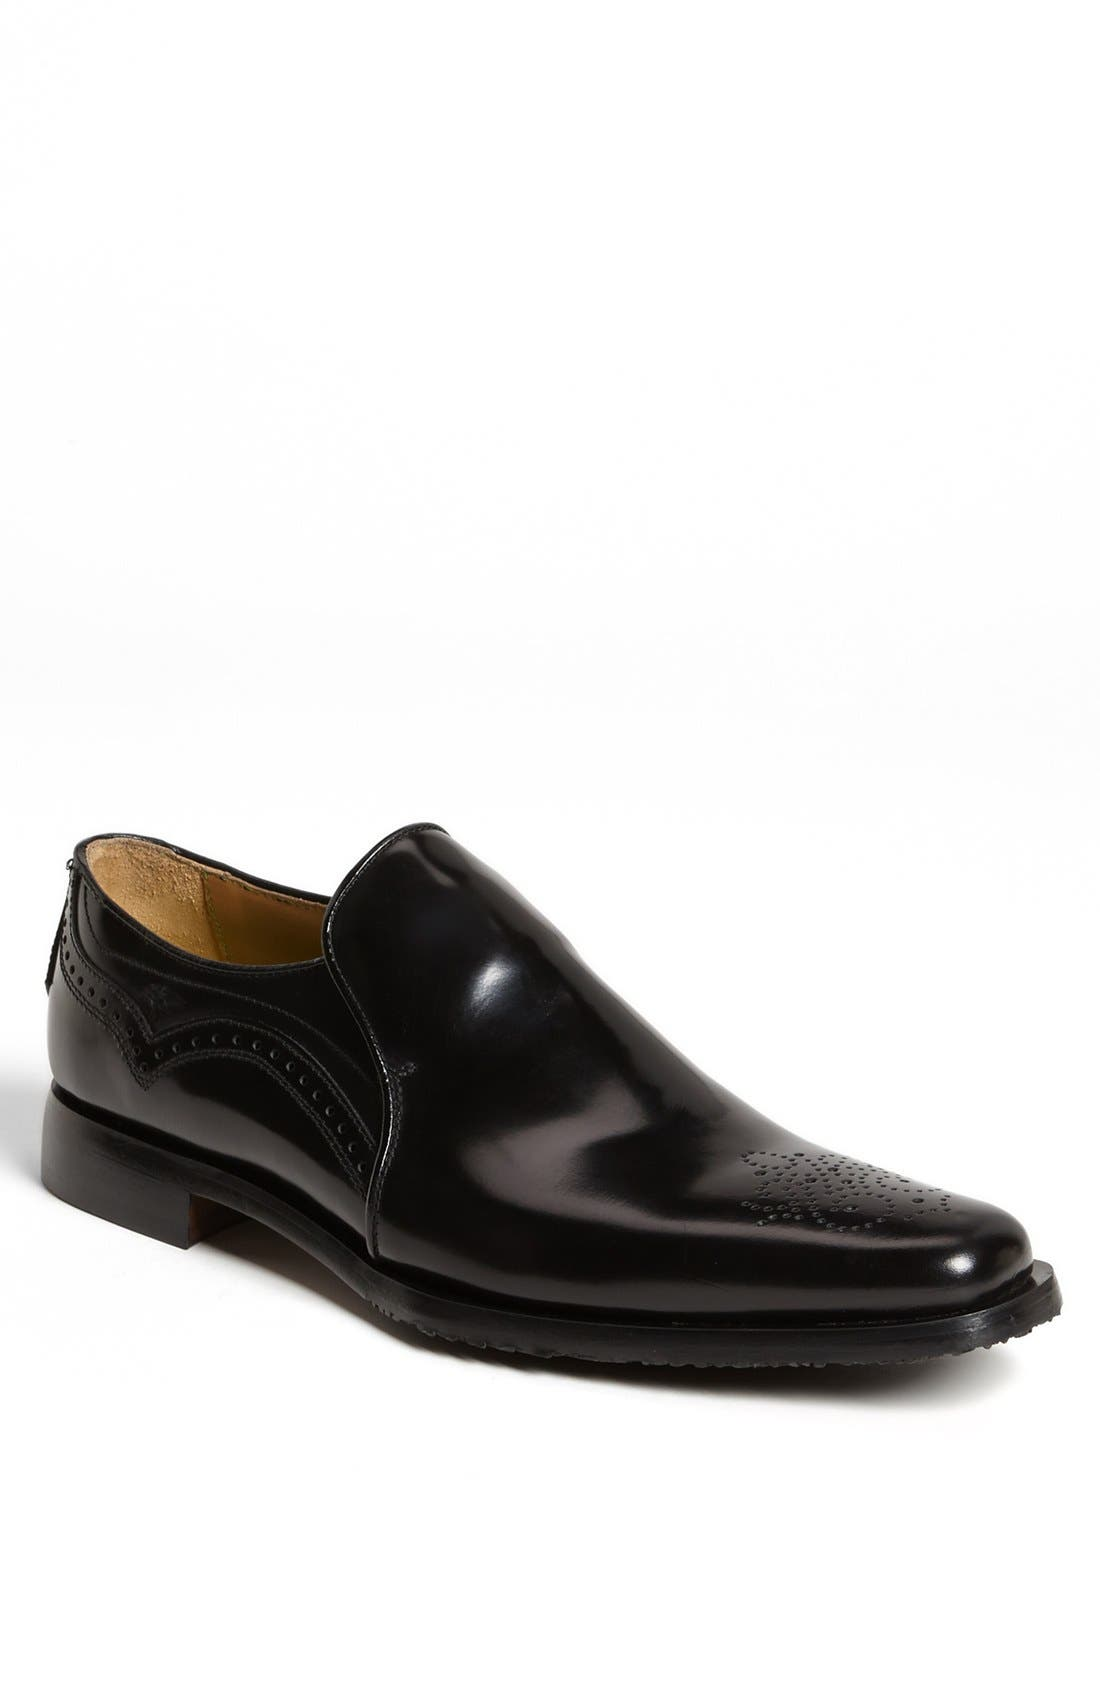 Main Image - Oliver Sweeney 'Ofano' Medallion Toe Loafer